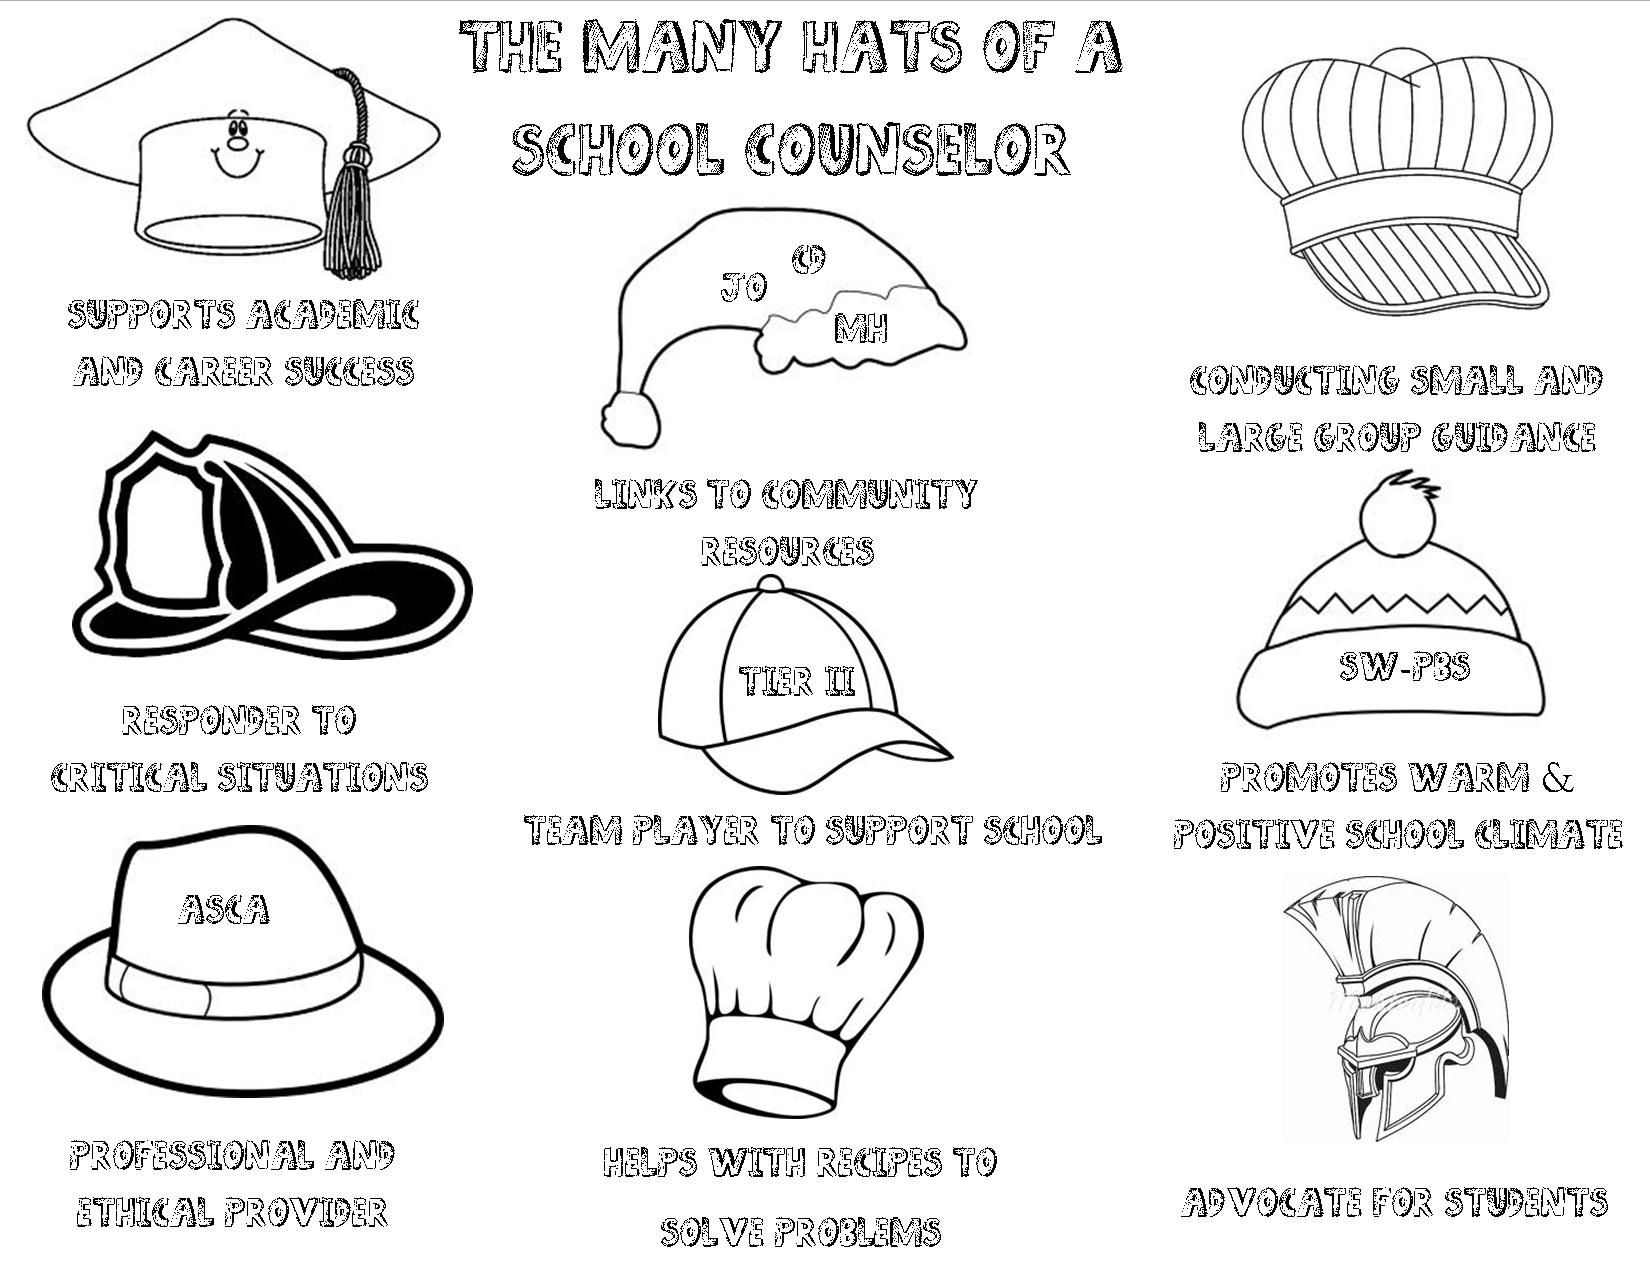 The Many Hats Of A School Counselor